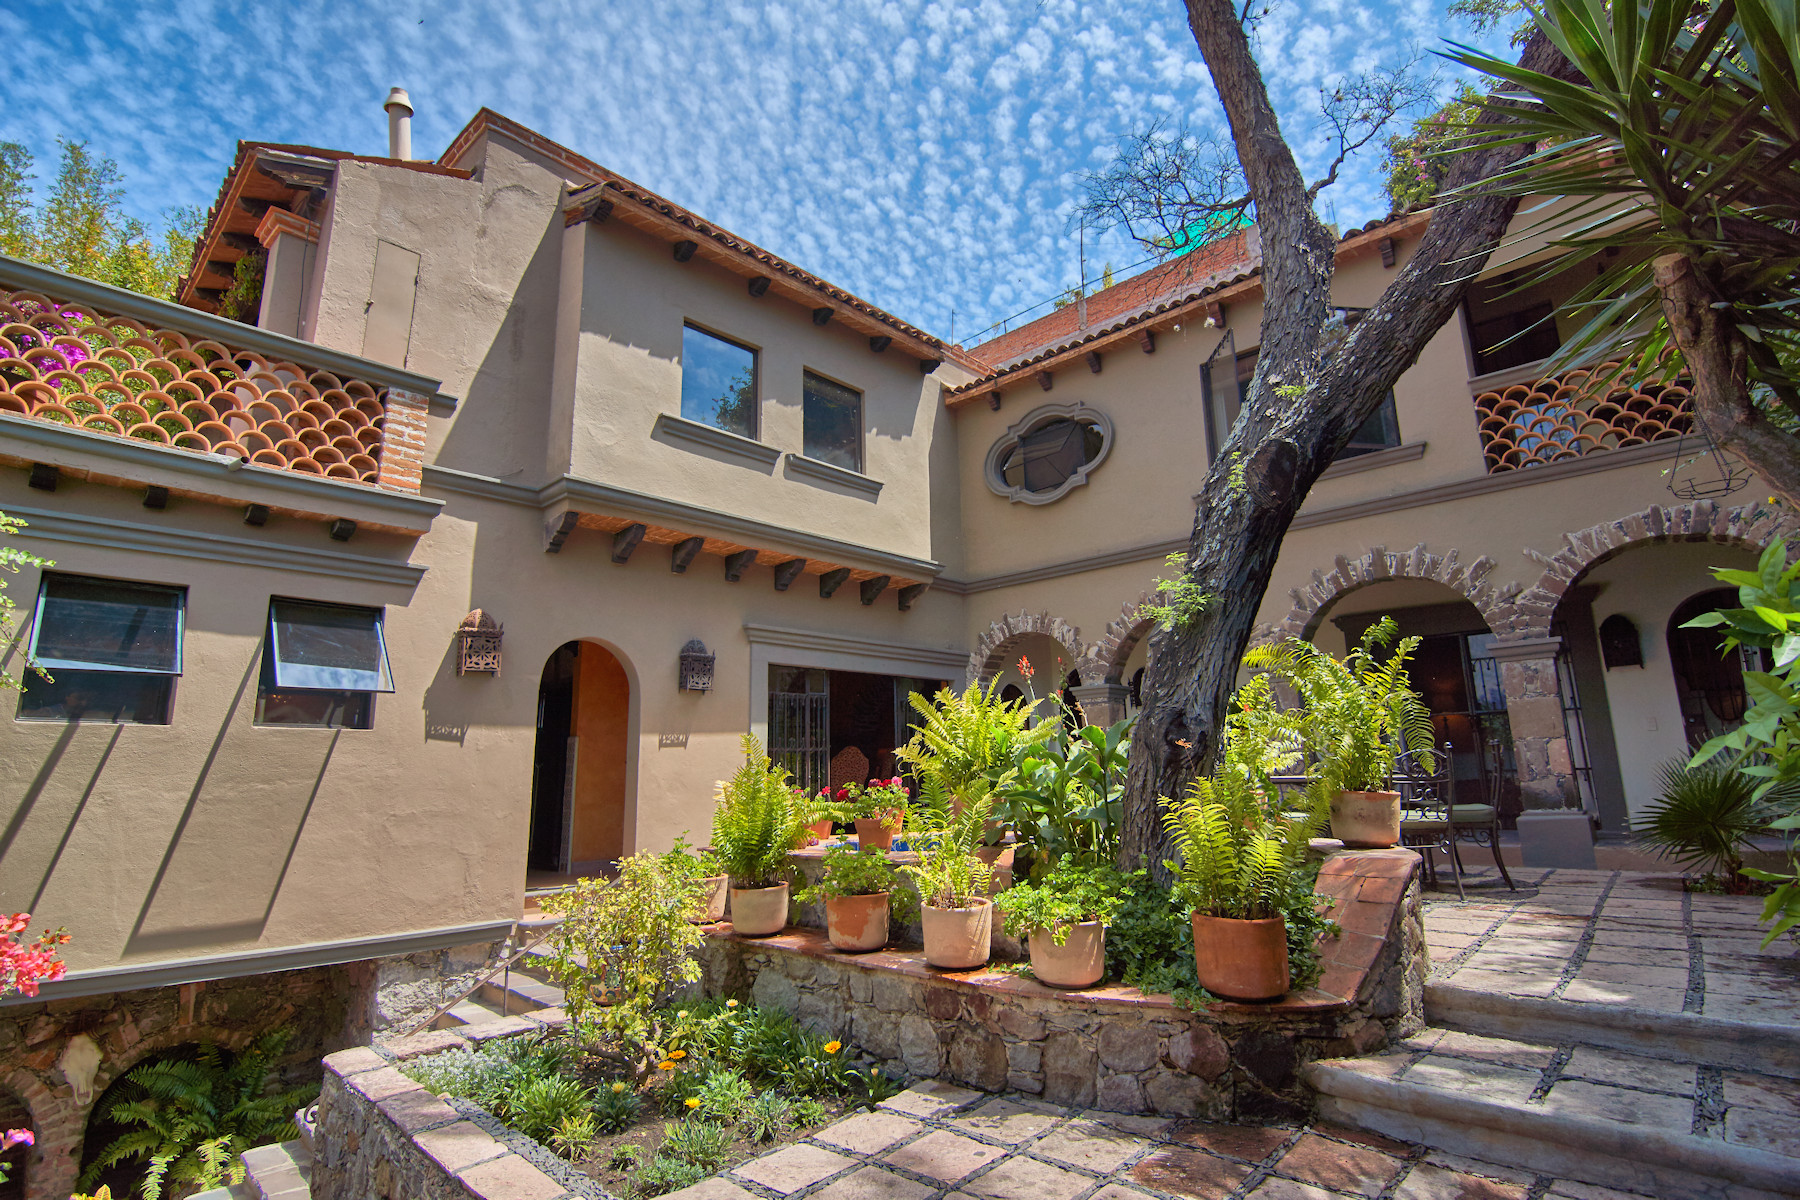 Single Family Home for Sale at Calle El Chorro San Miguel De Allende, Guanajuato 37700 Mexico